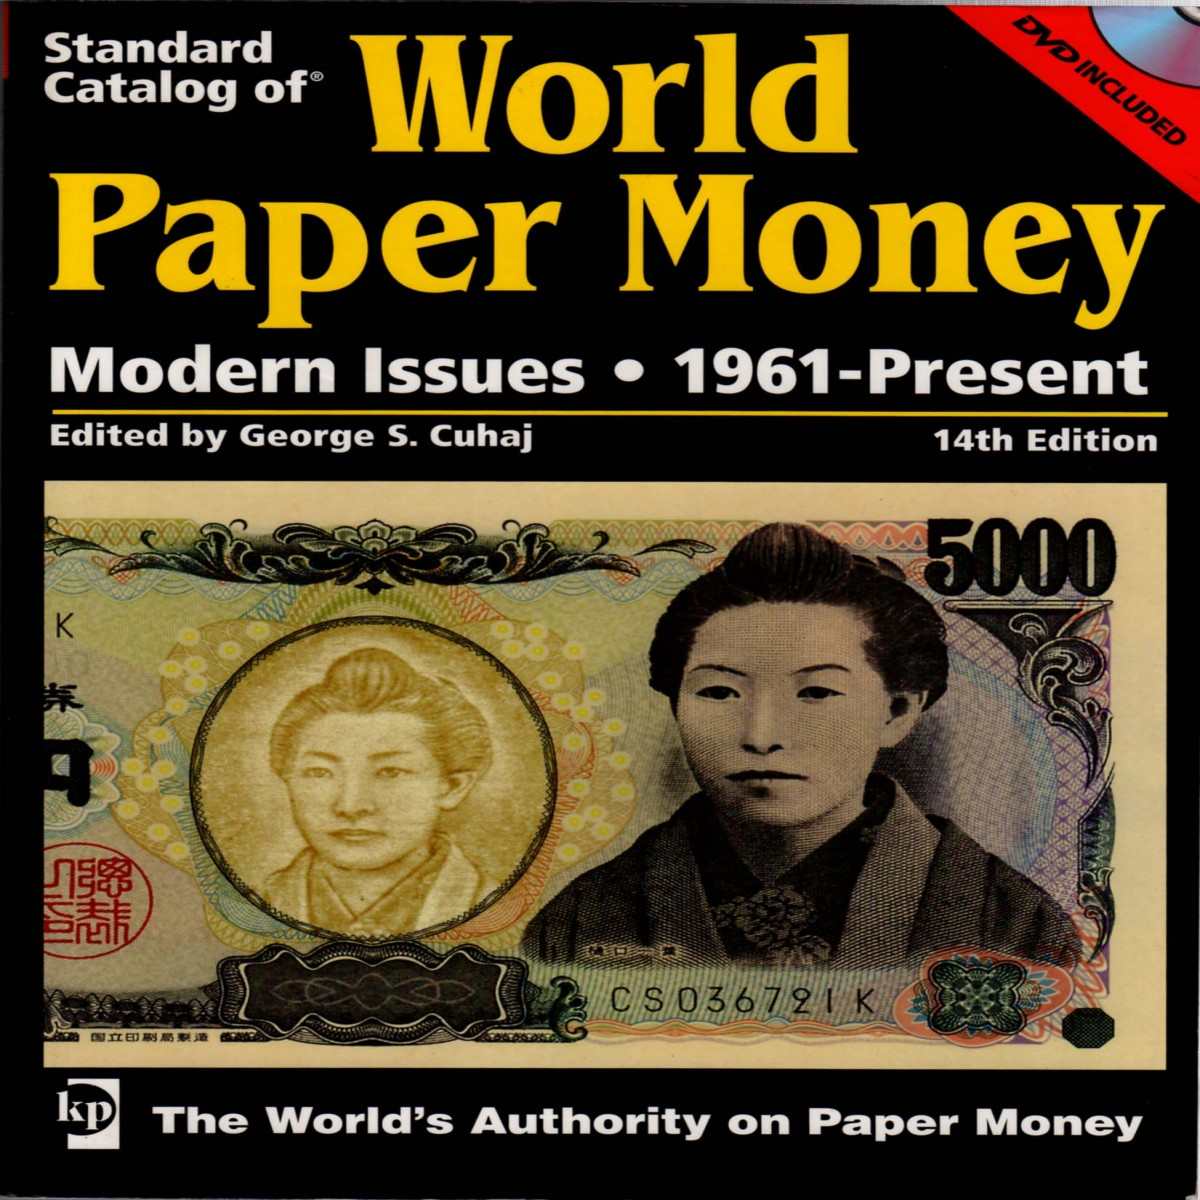 Standard Catalog of World Paper Money, Modern Issues 1961-Present, 14th Edition